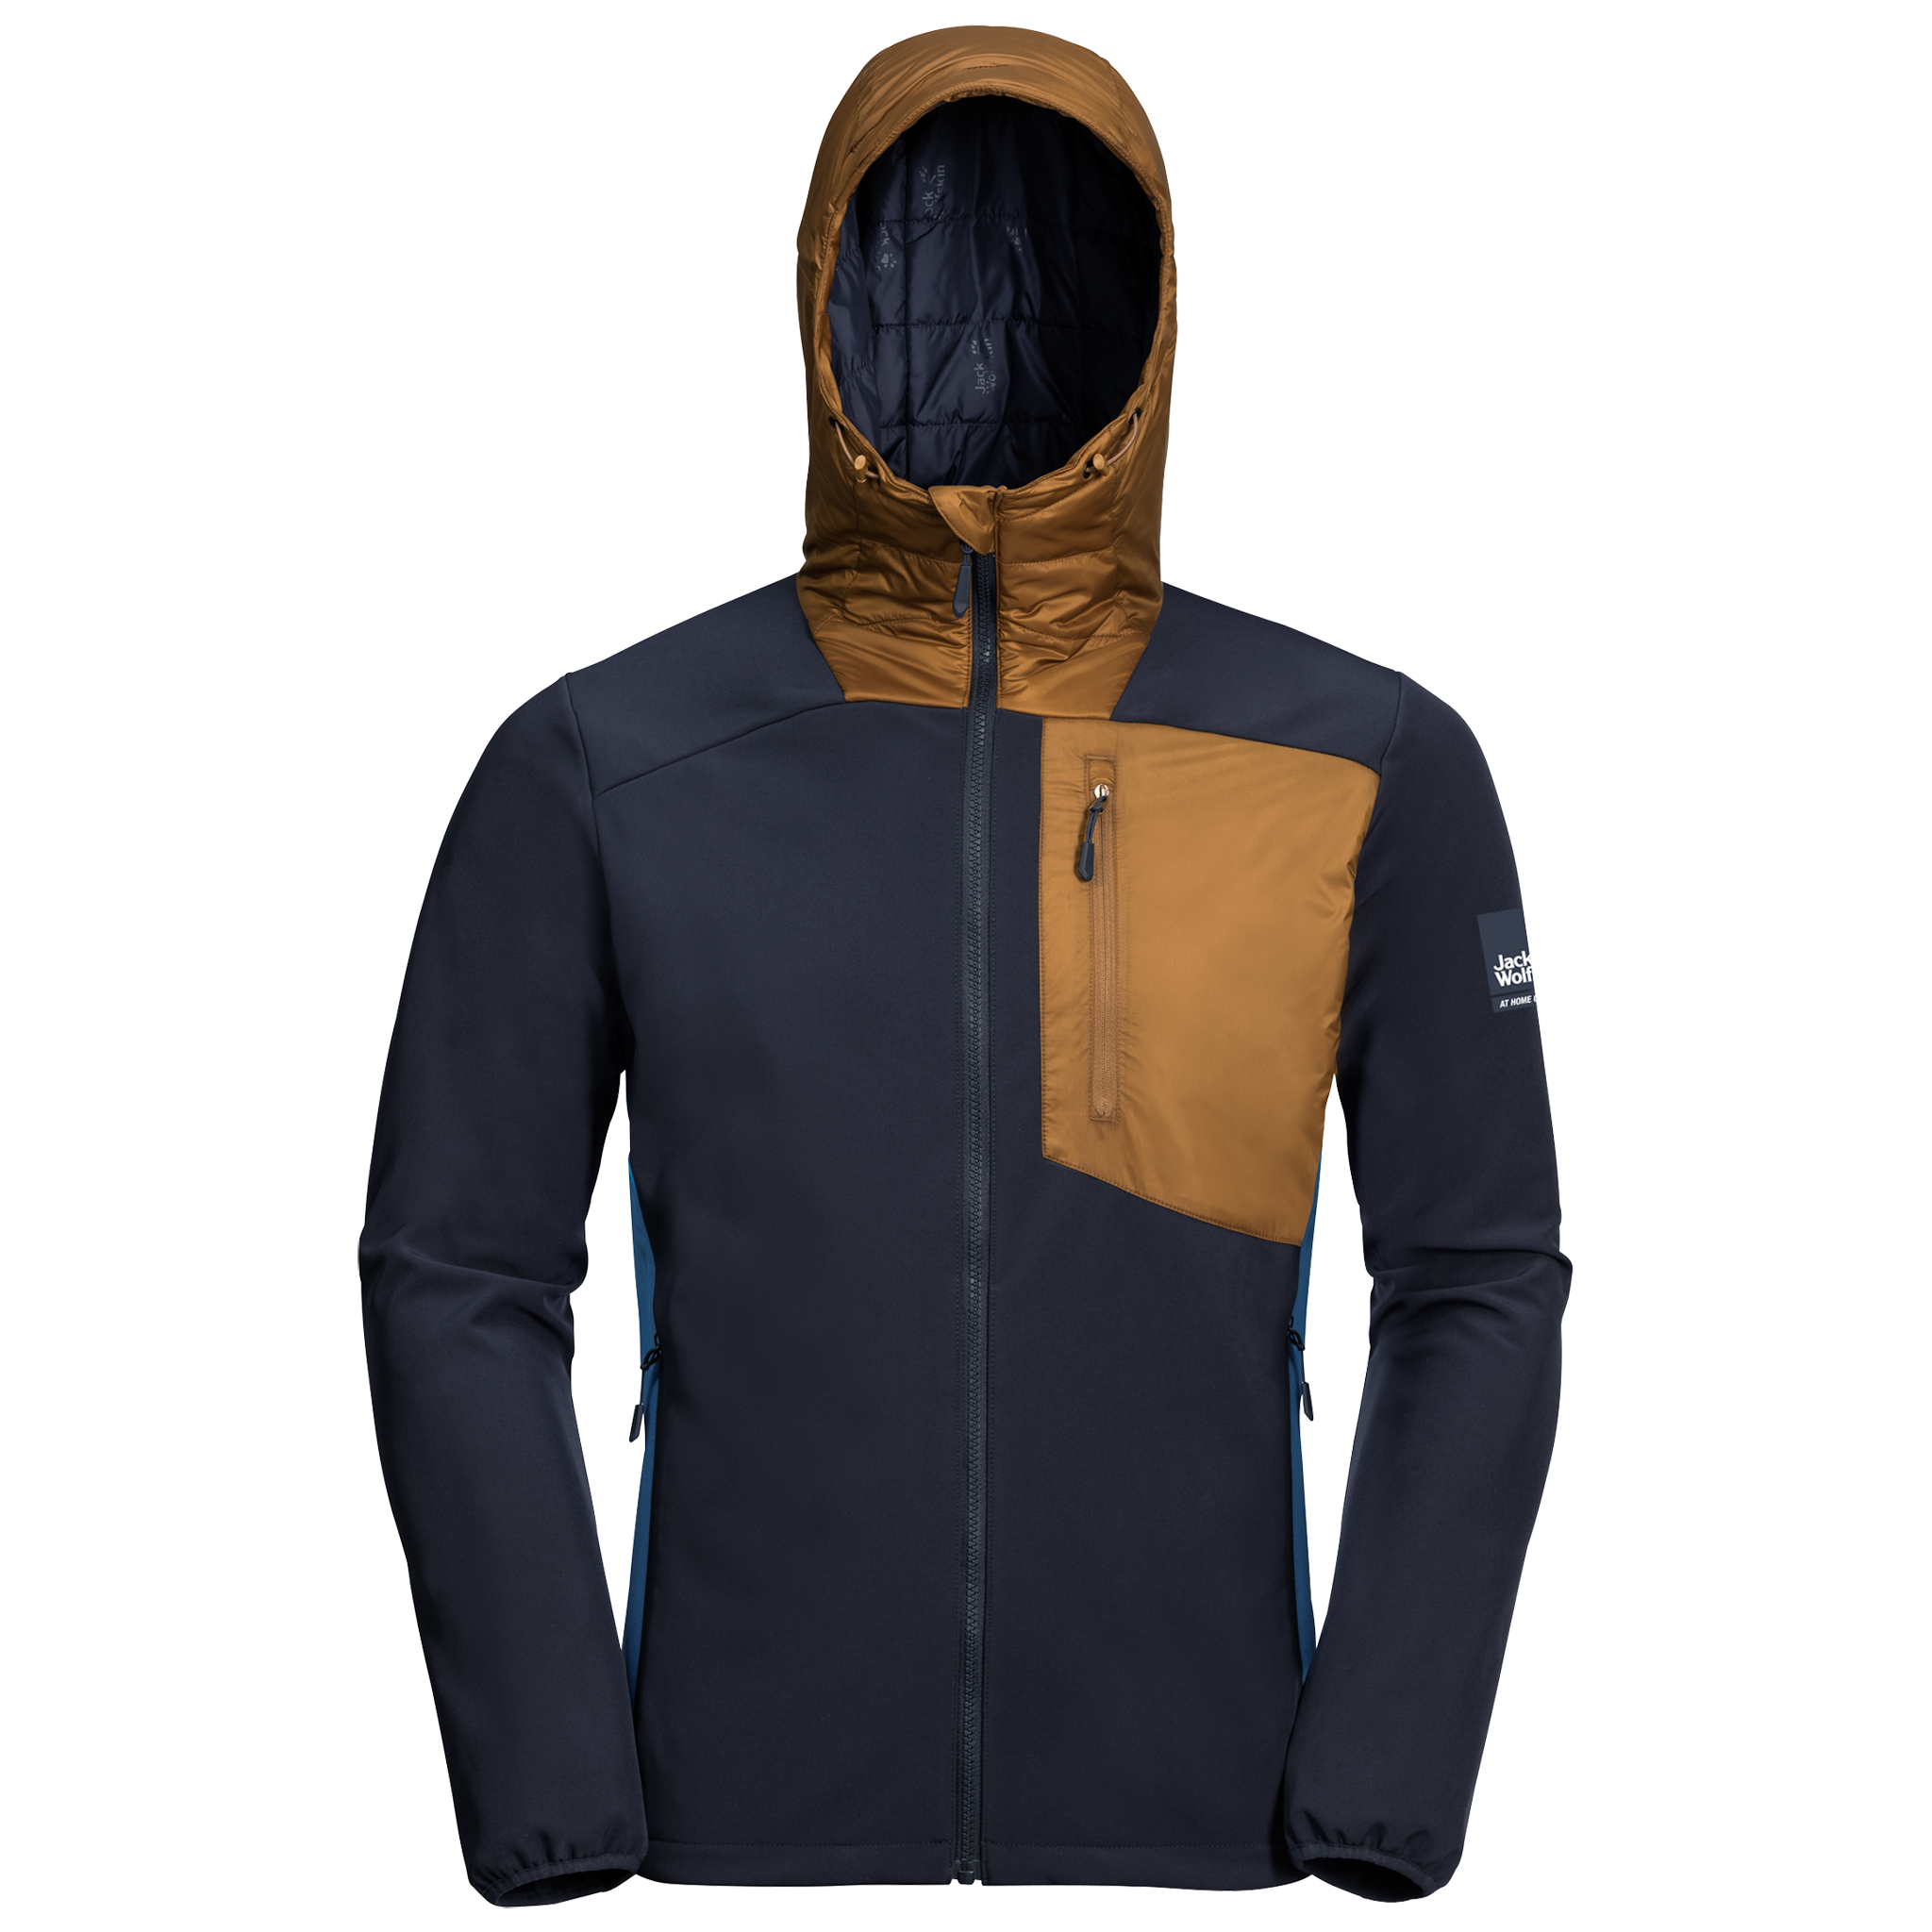 Jack Wolfskin 365 Millenium Jacket for Men in Night Sky Blue